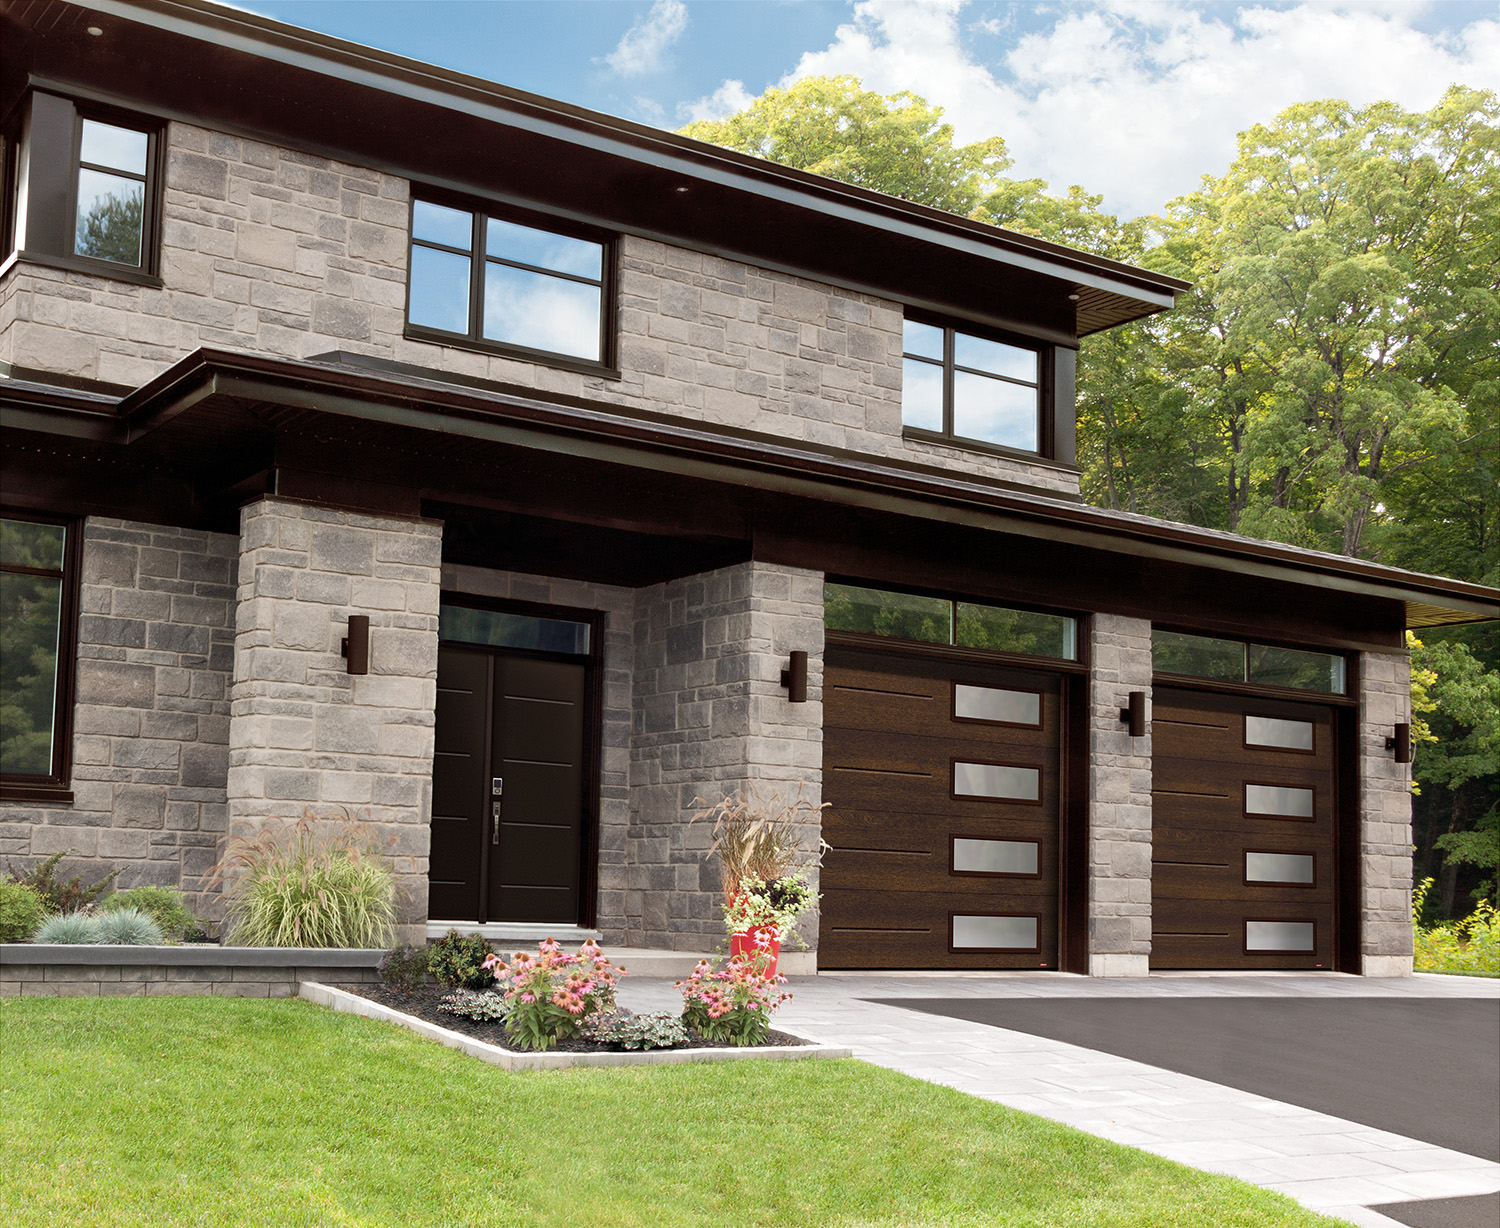 Garage doors with new Chocolate Walnut color